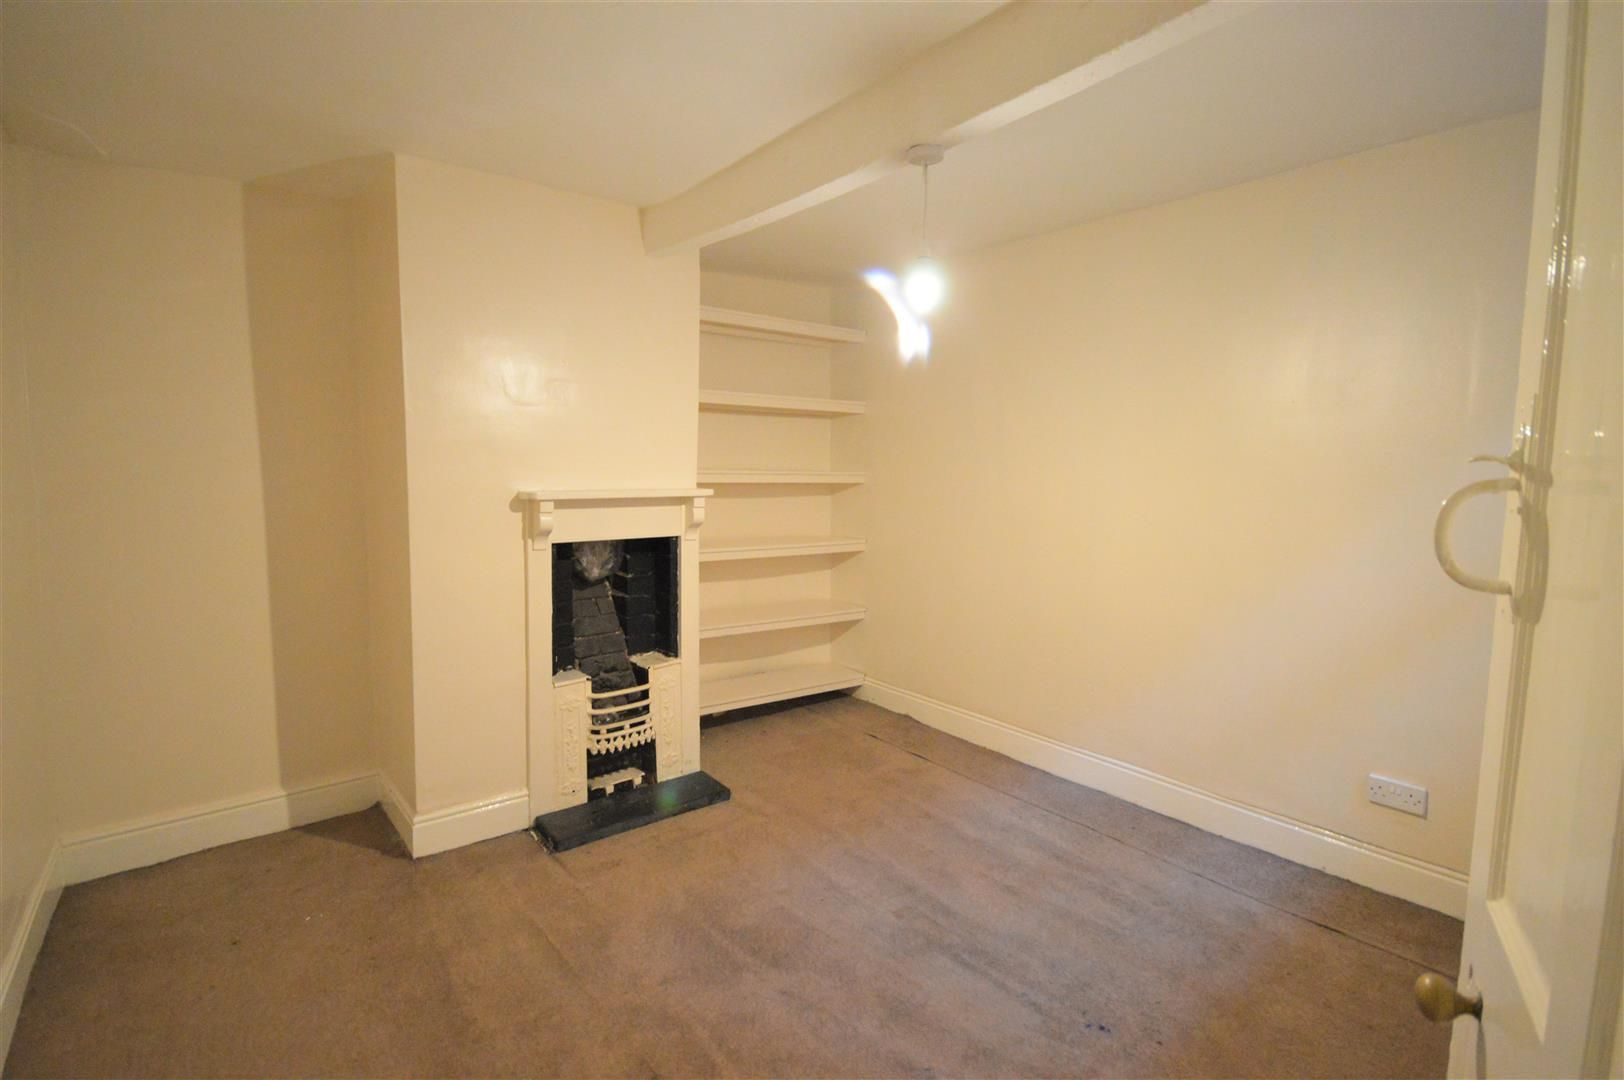 4 bed terraced for sale in Leominster 7